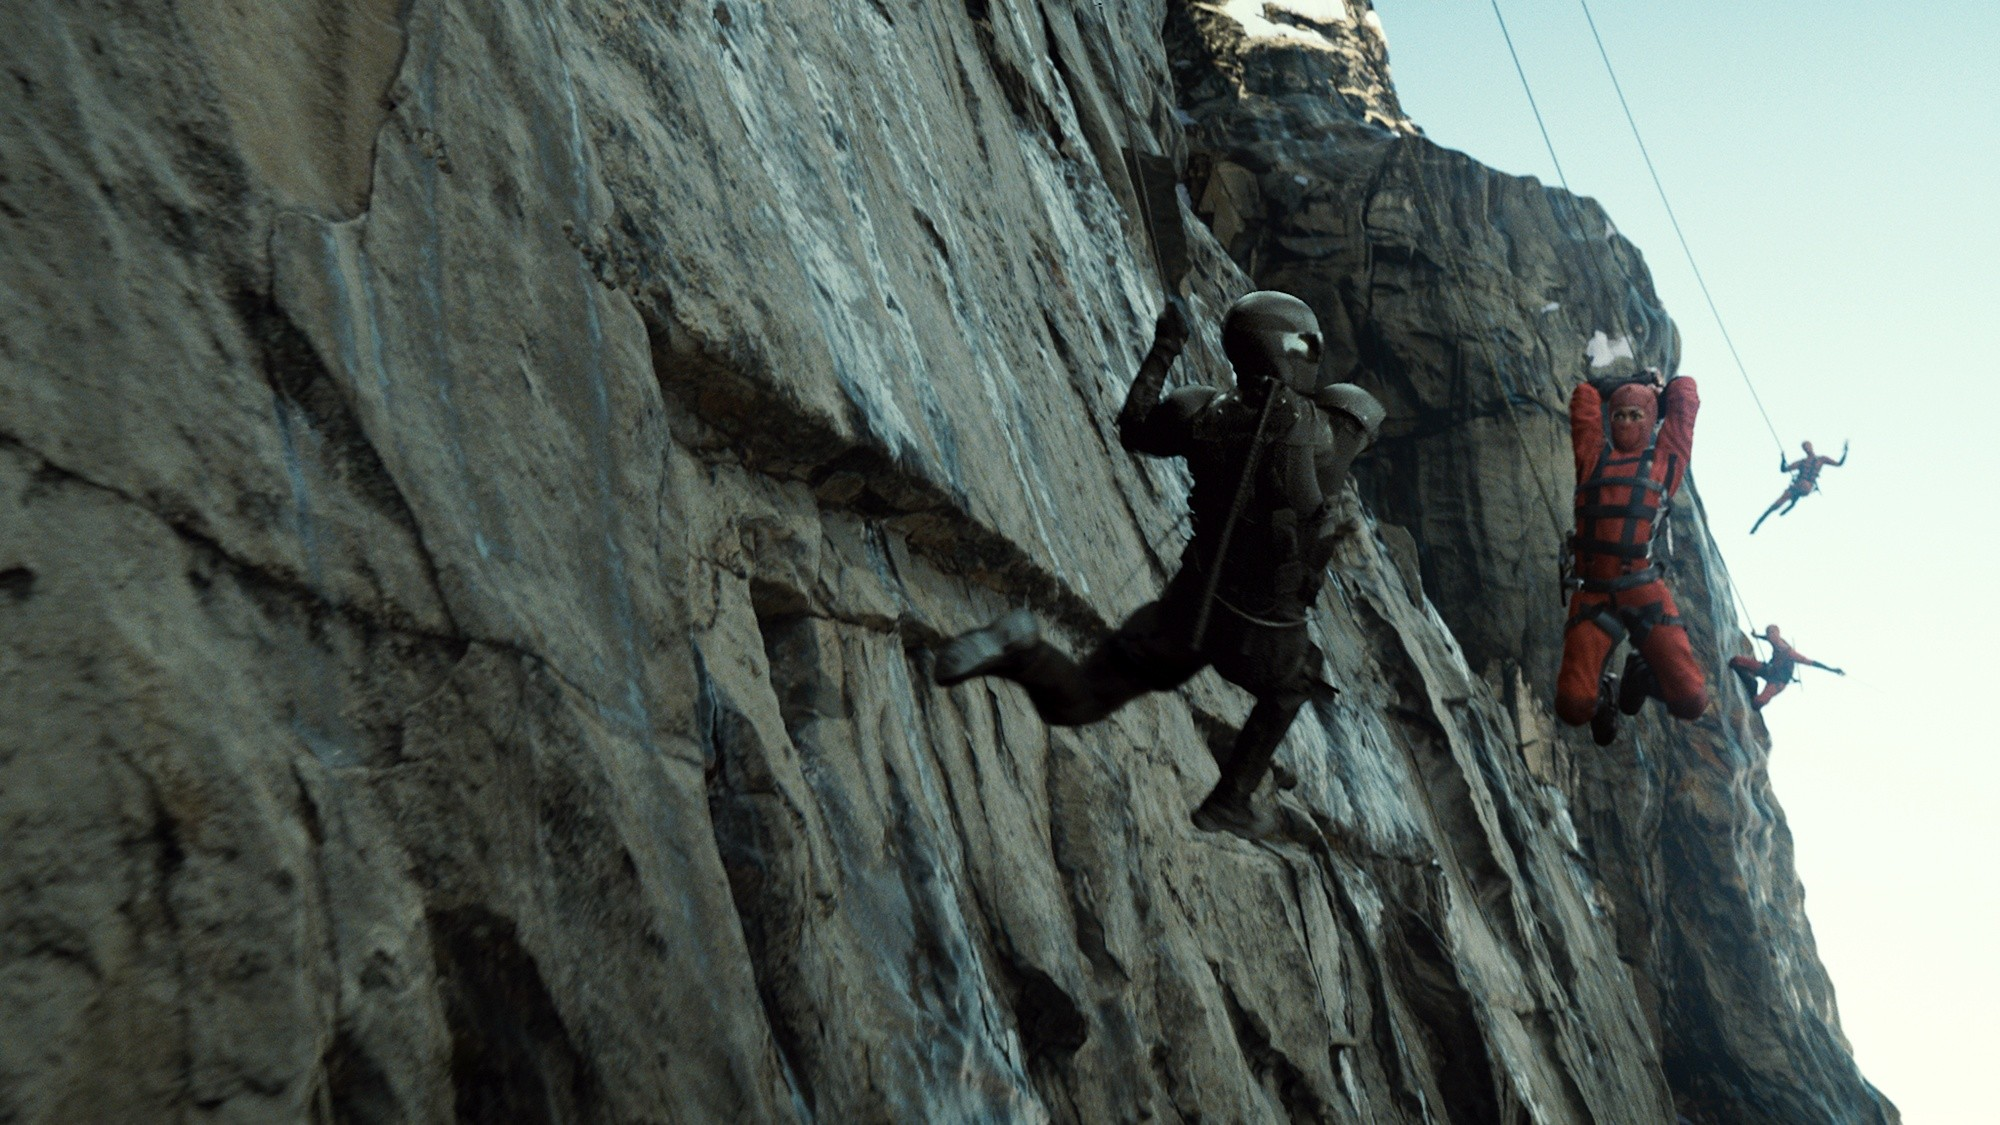 Afight with ninja on the side of a Himalayan mountain in G.I. Joe: Retaliation (2013)